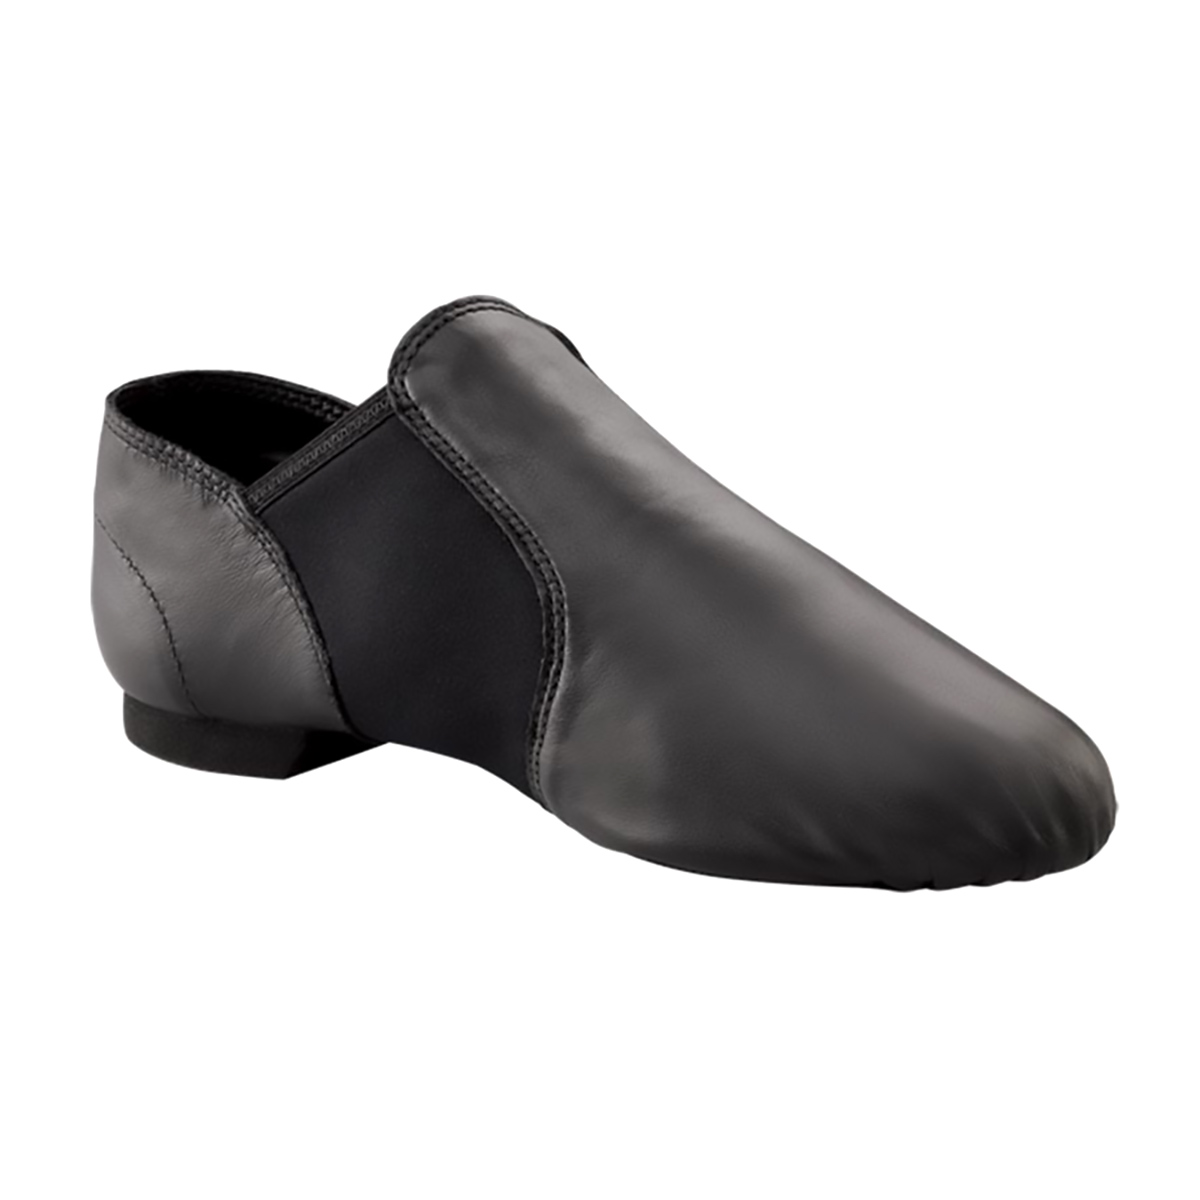 capezio e series jazz slip on jazz shoes black